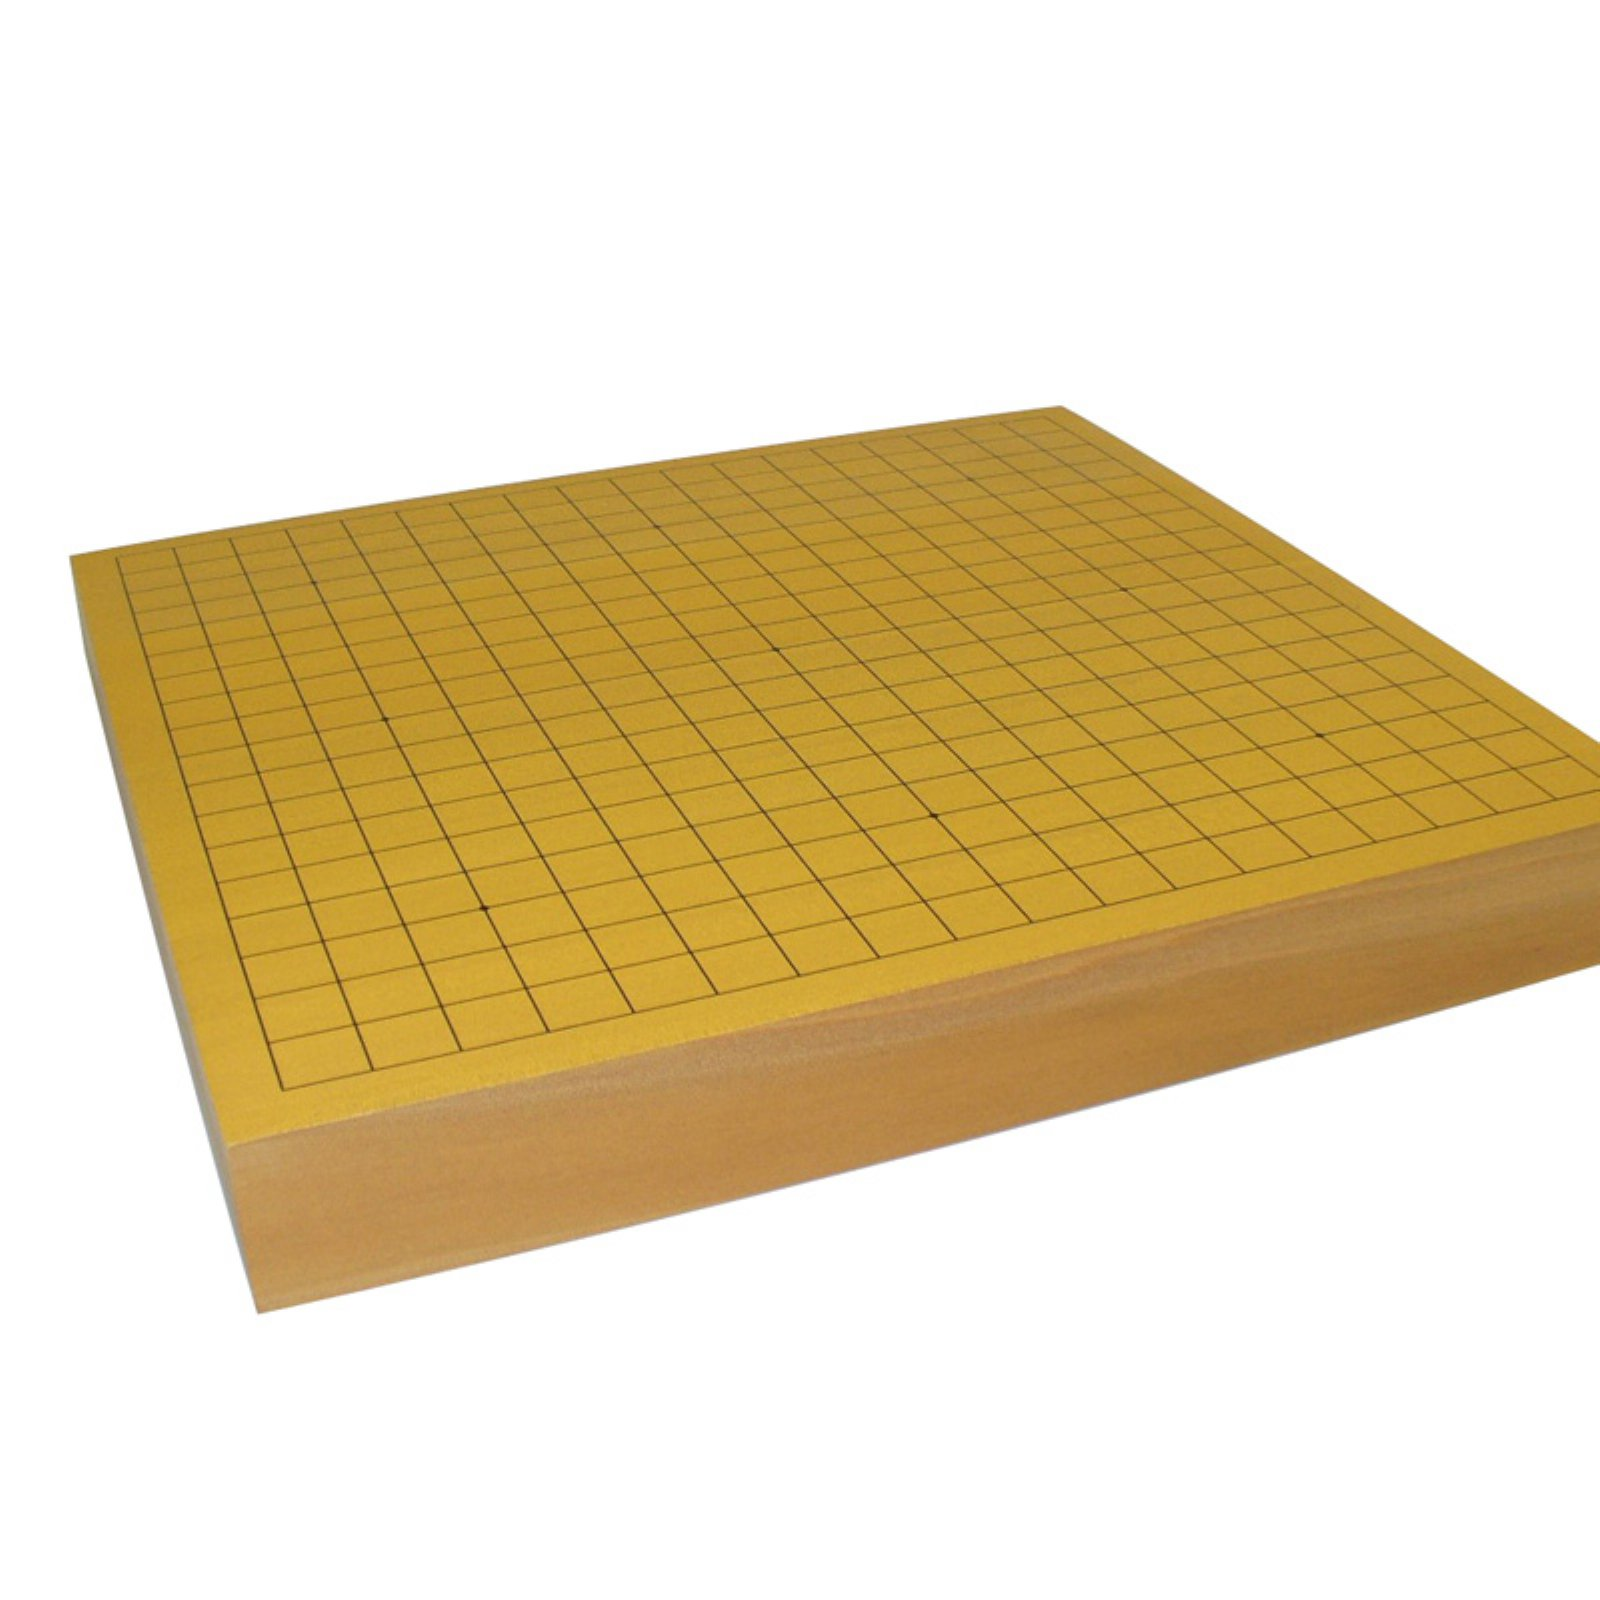 WorldWise Imports Agathis Go Board